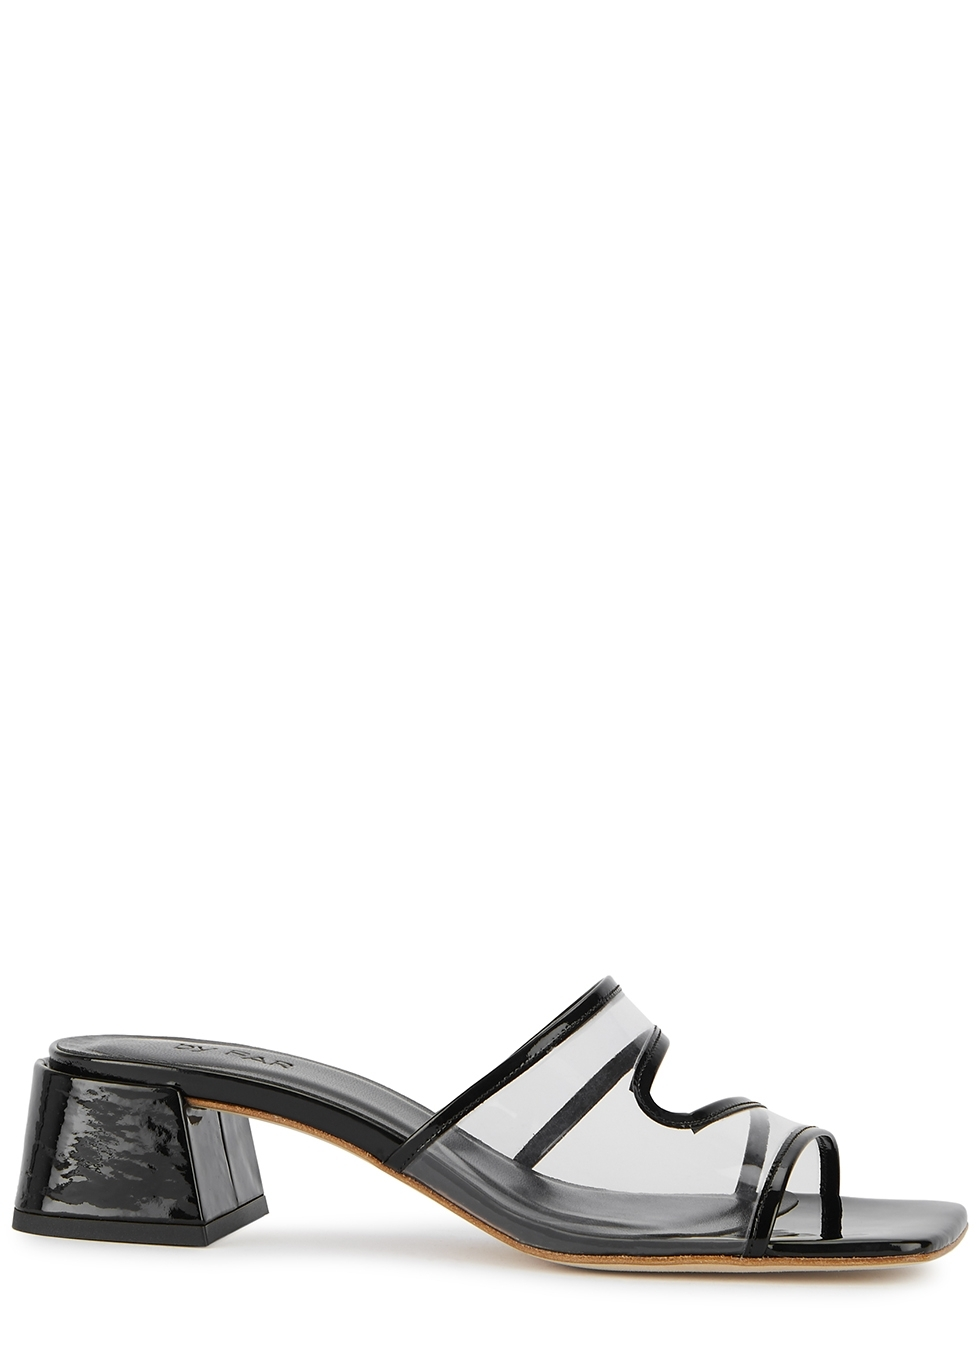 88011be64 Women's Designer Sandals - Harvey Nichols